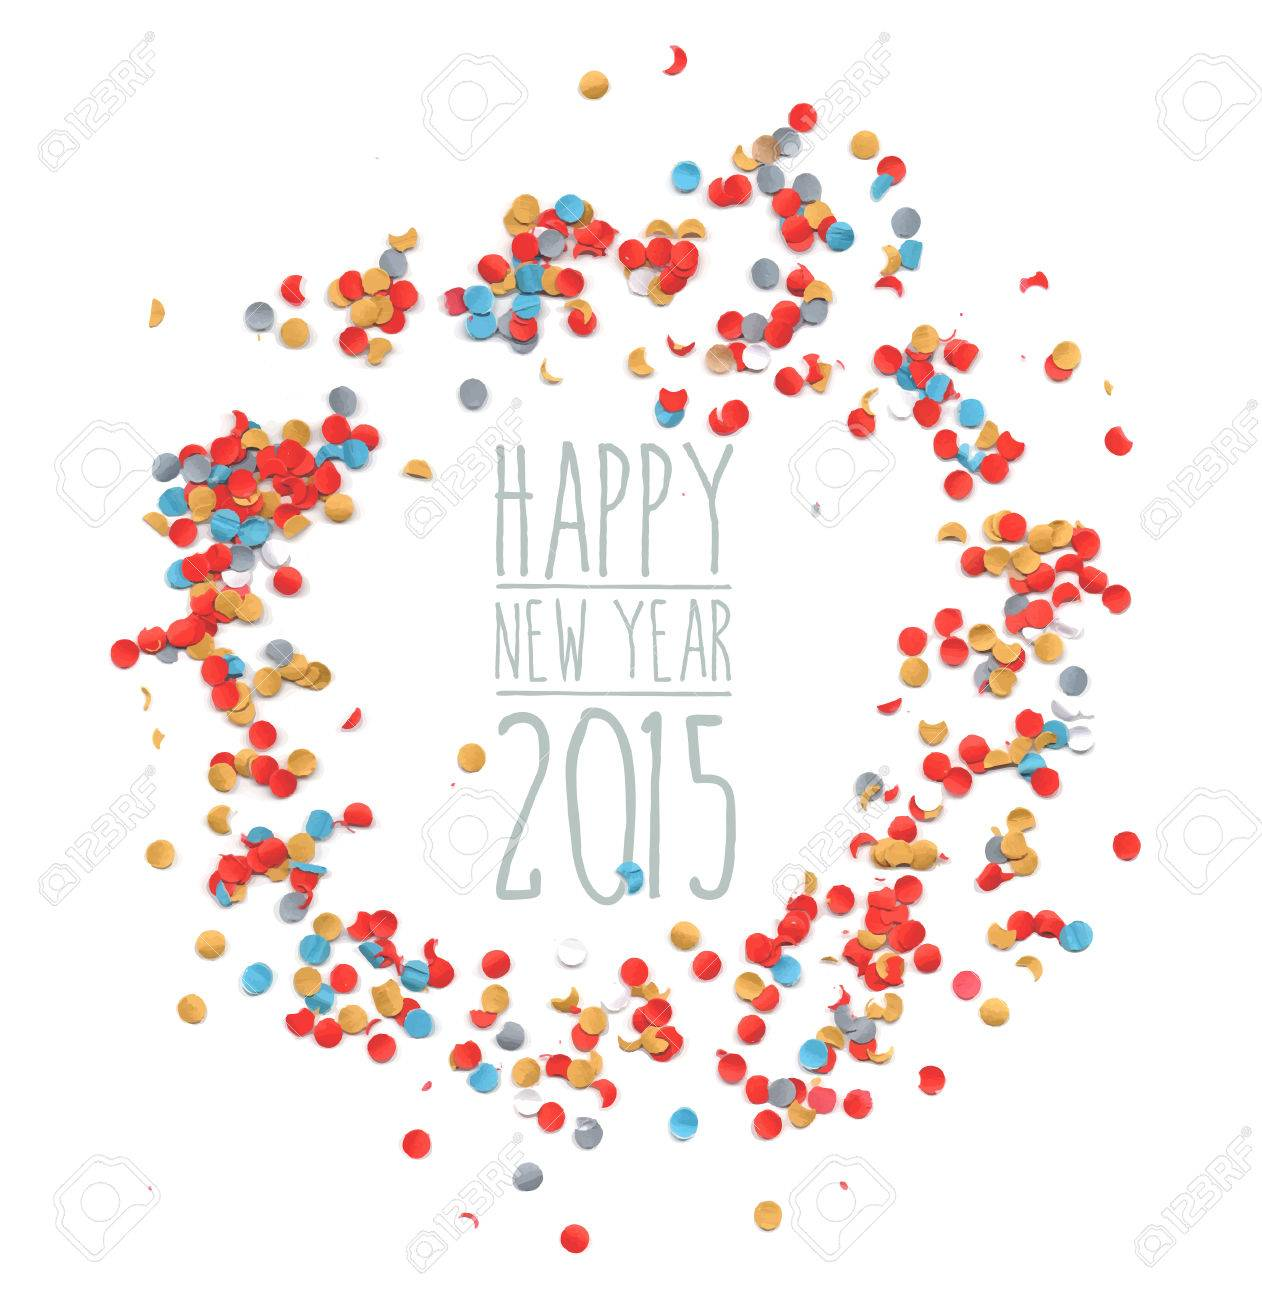 happy new year eve celebration 2015 with colorful confetti template background ideal for greeting card